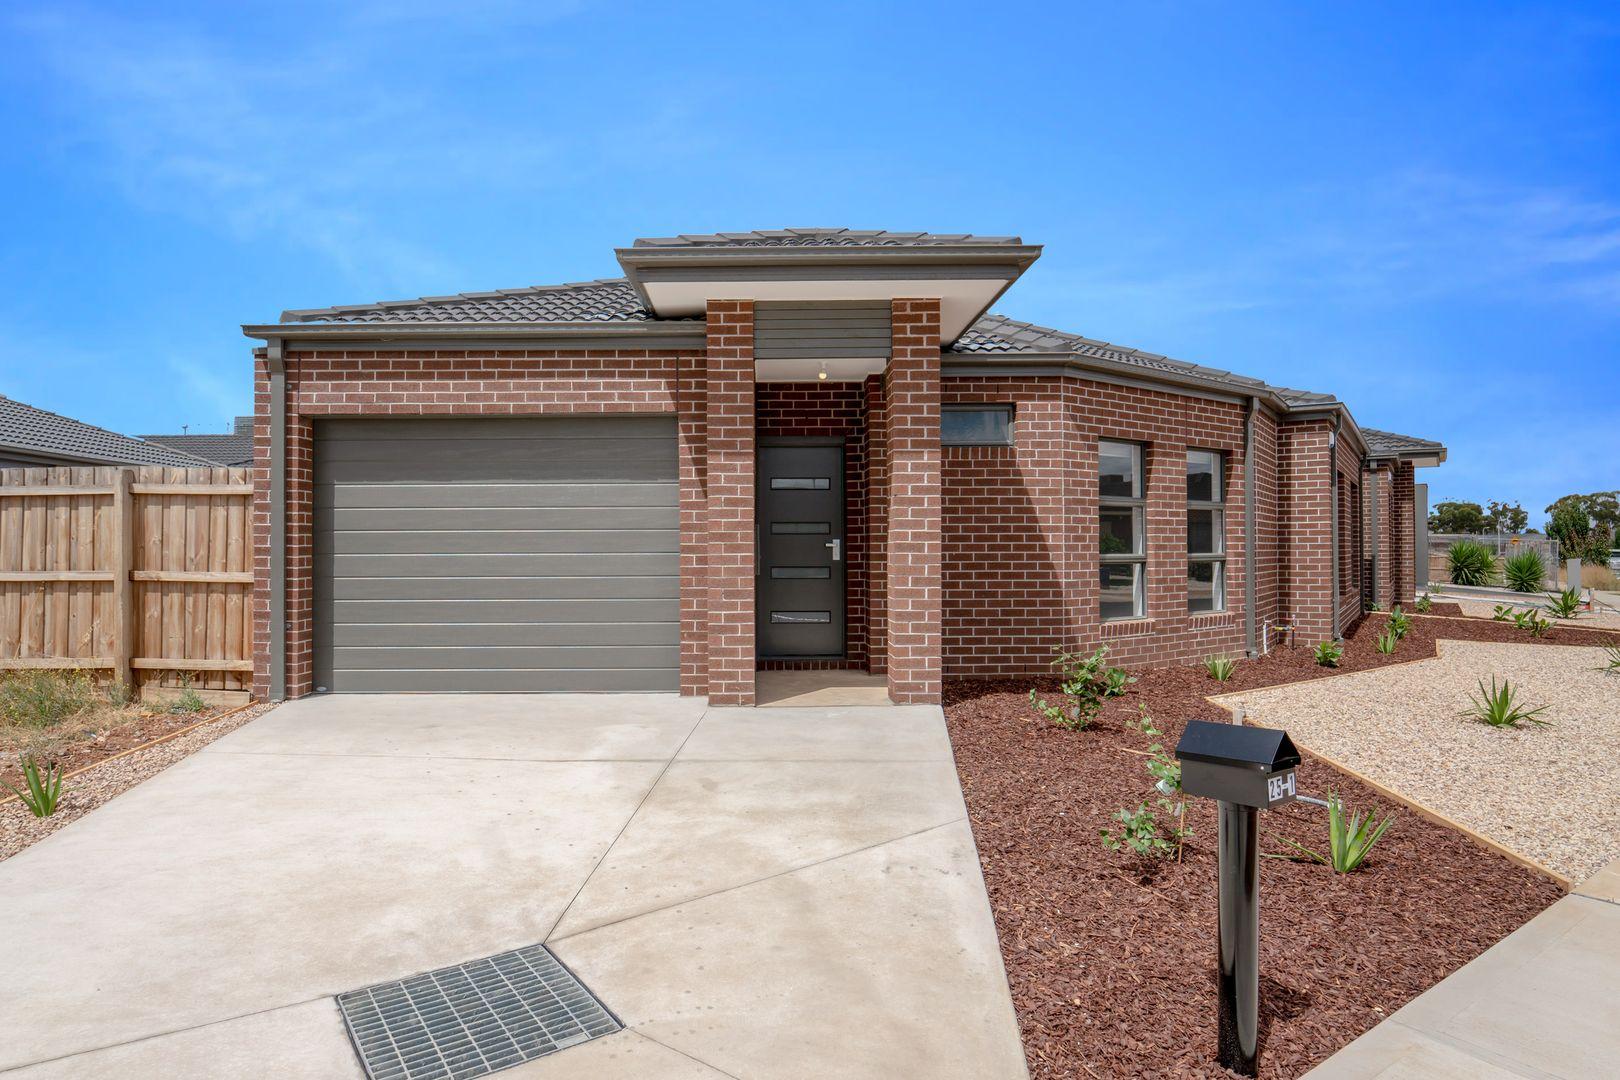 1/25 Cotton Field Way, Brookfield VIC 3338, Image 0